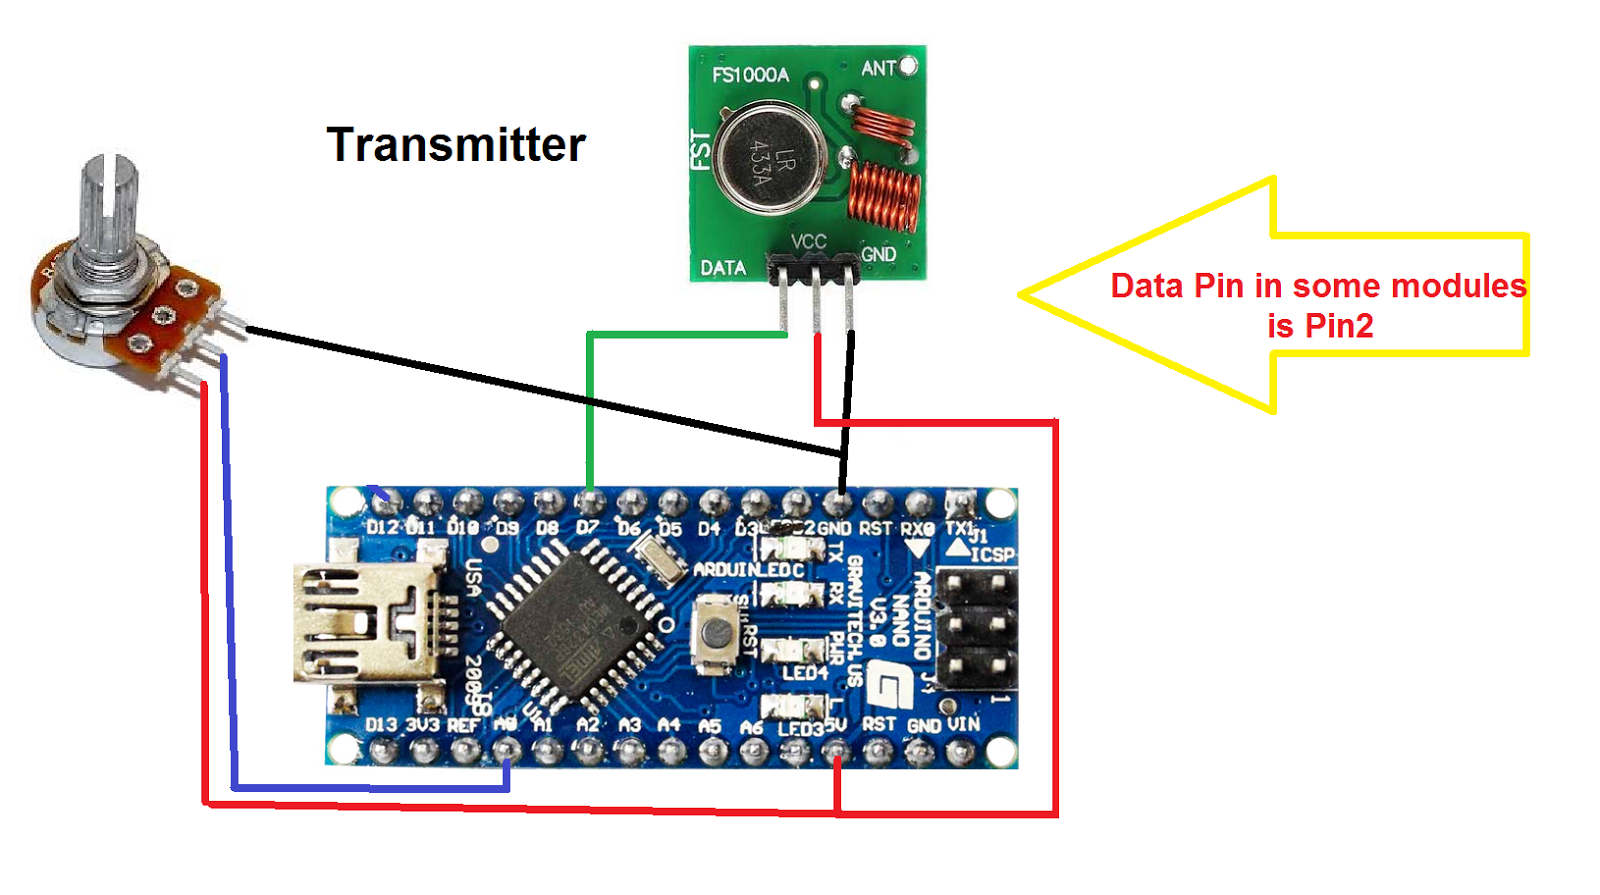 Remote Thermometer Circuit With Receiver And Transmitter The Circuit